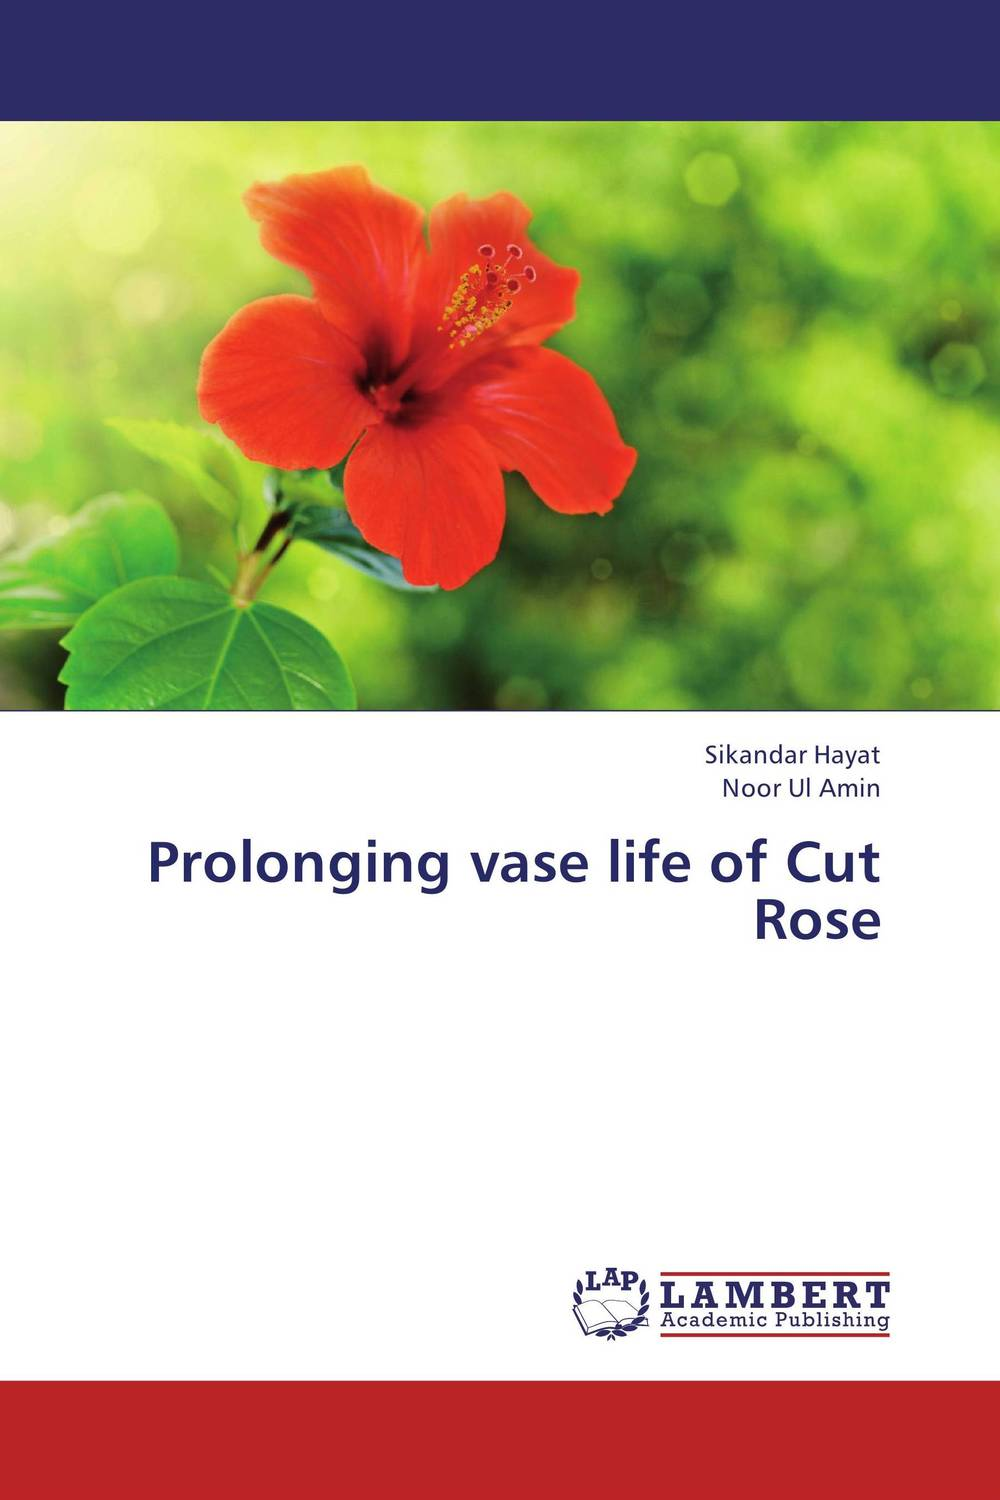 Prolonging vase life of Cut Rose technical efficiency of greenhouse rose cut flower farms